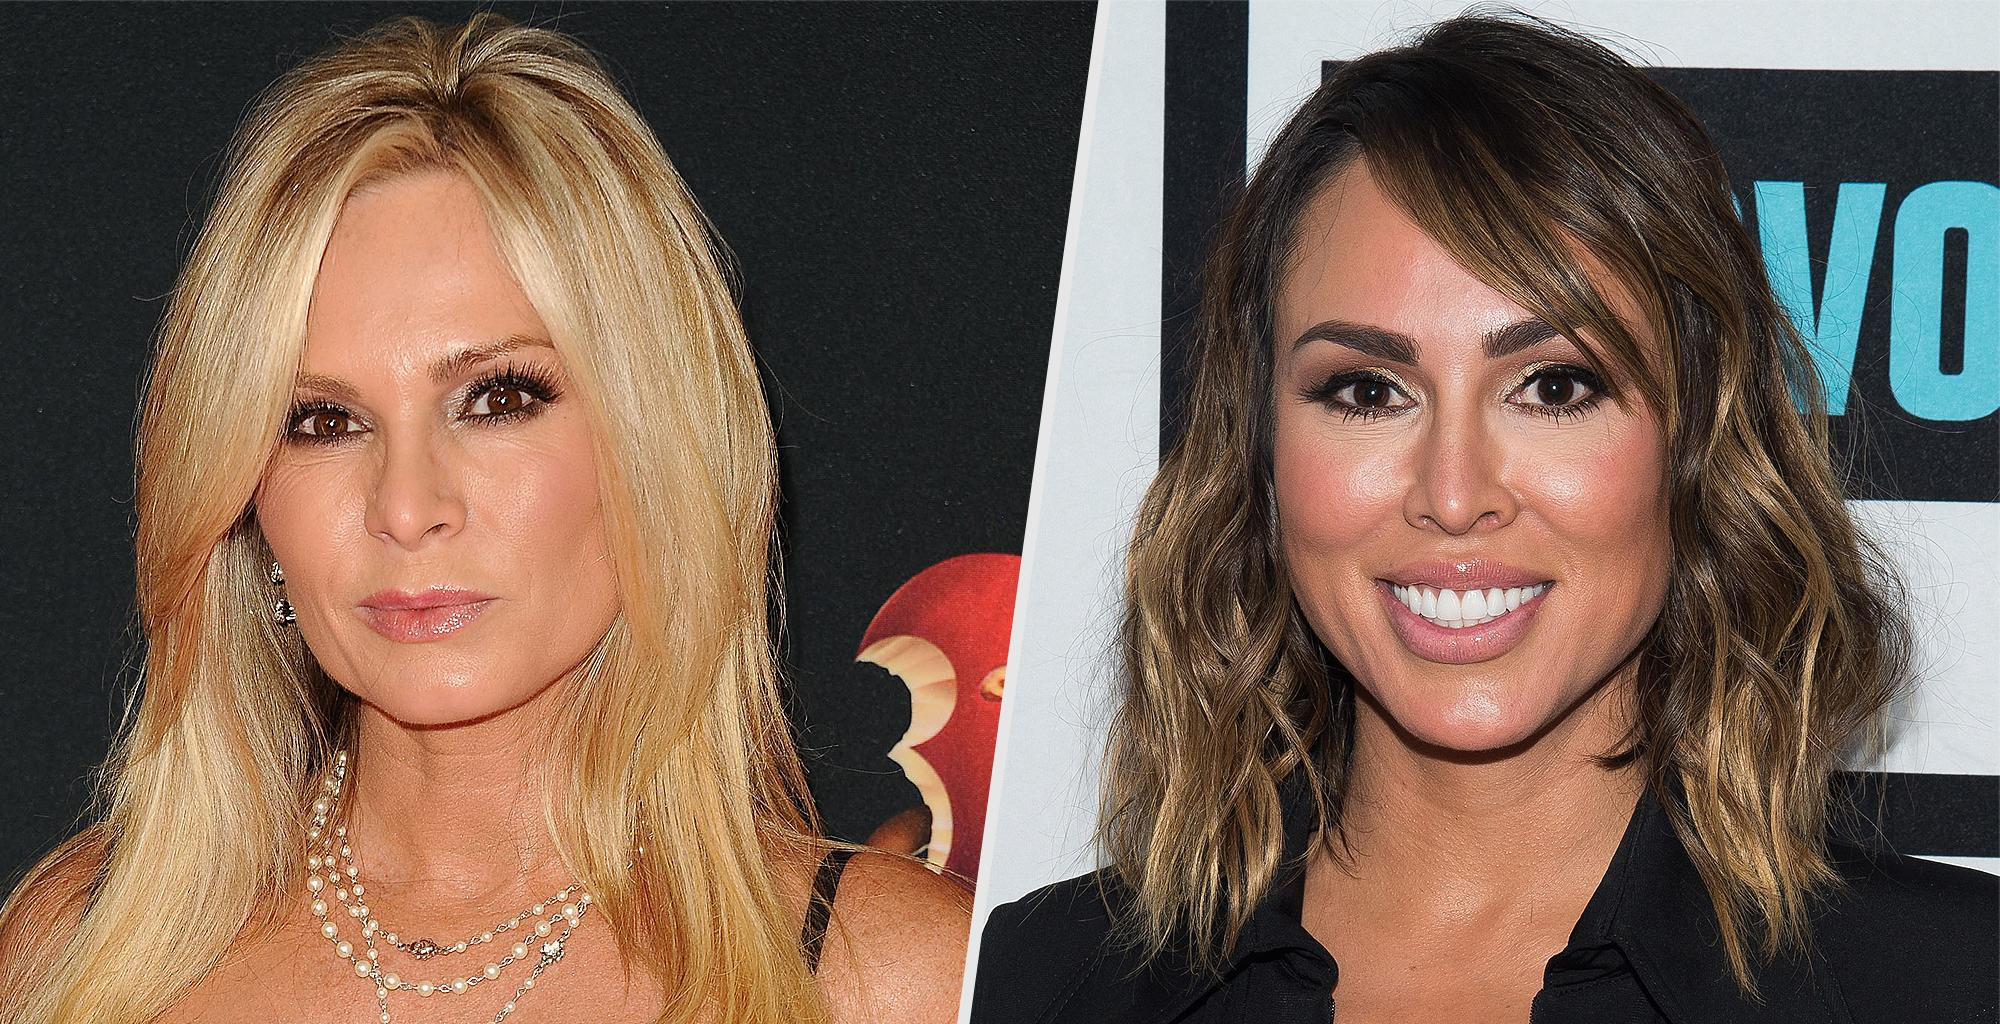 Kelly Dodd Drags 'Stale' Tamra Judge and Argues That 'She's Exhausted Her Stay' On RHOC